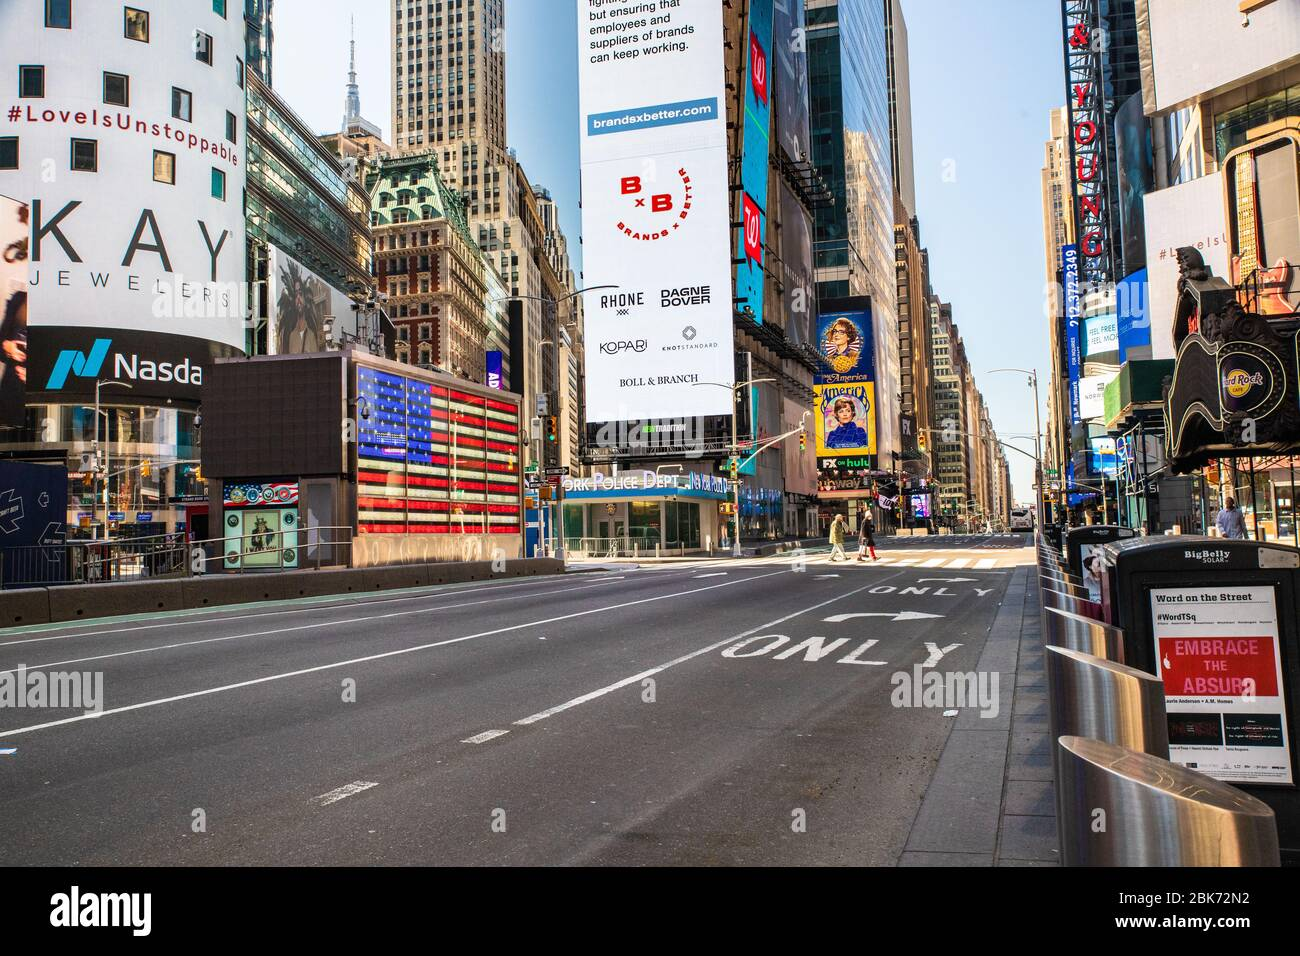 NEW YORK CITY - APRIL 19, 2020:  View of empty street in Times Square, NYC in Manhattan during the Covid-19 Coronavirus pandemic lockdown. Stock Photo